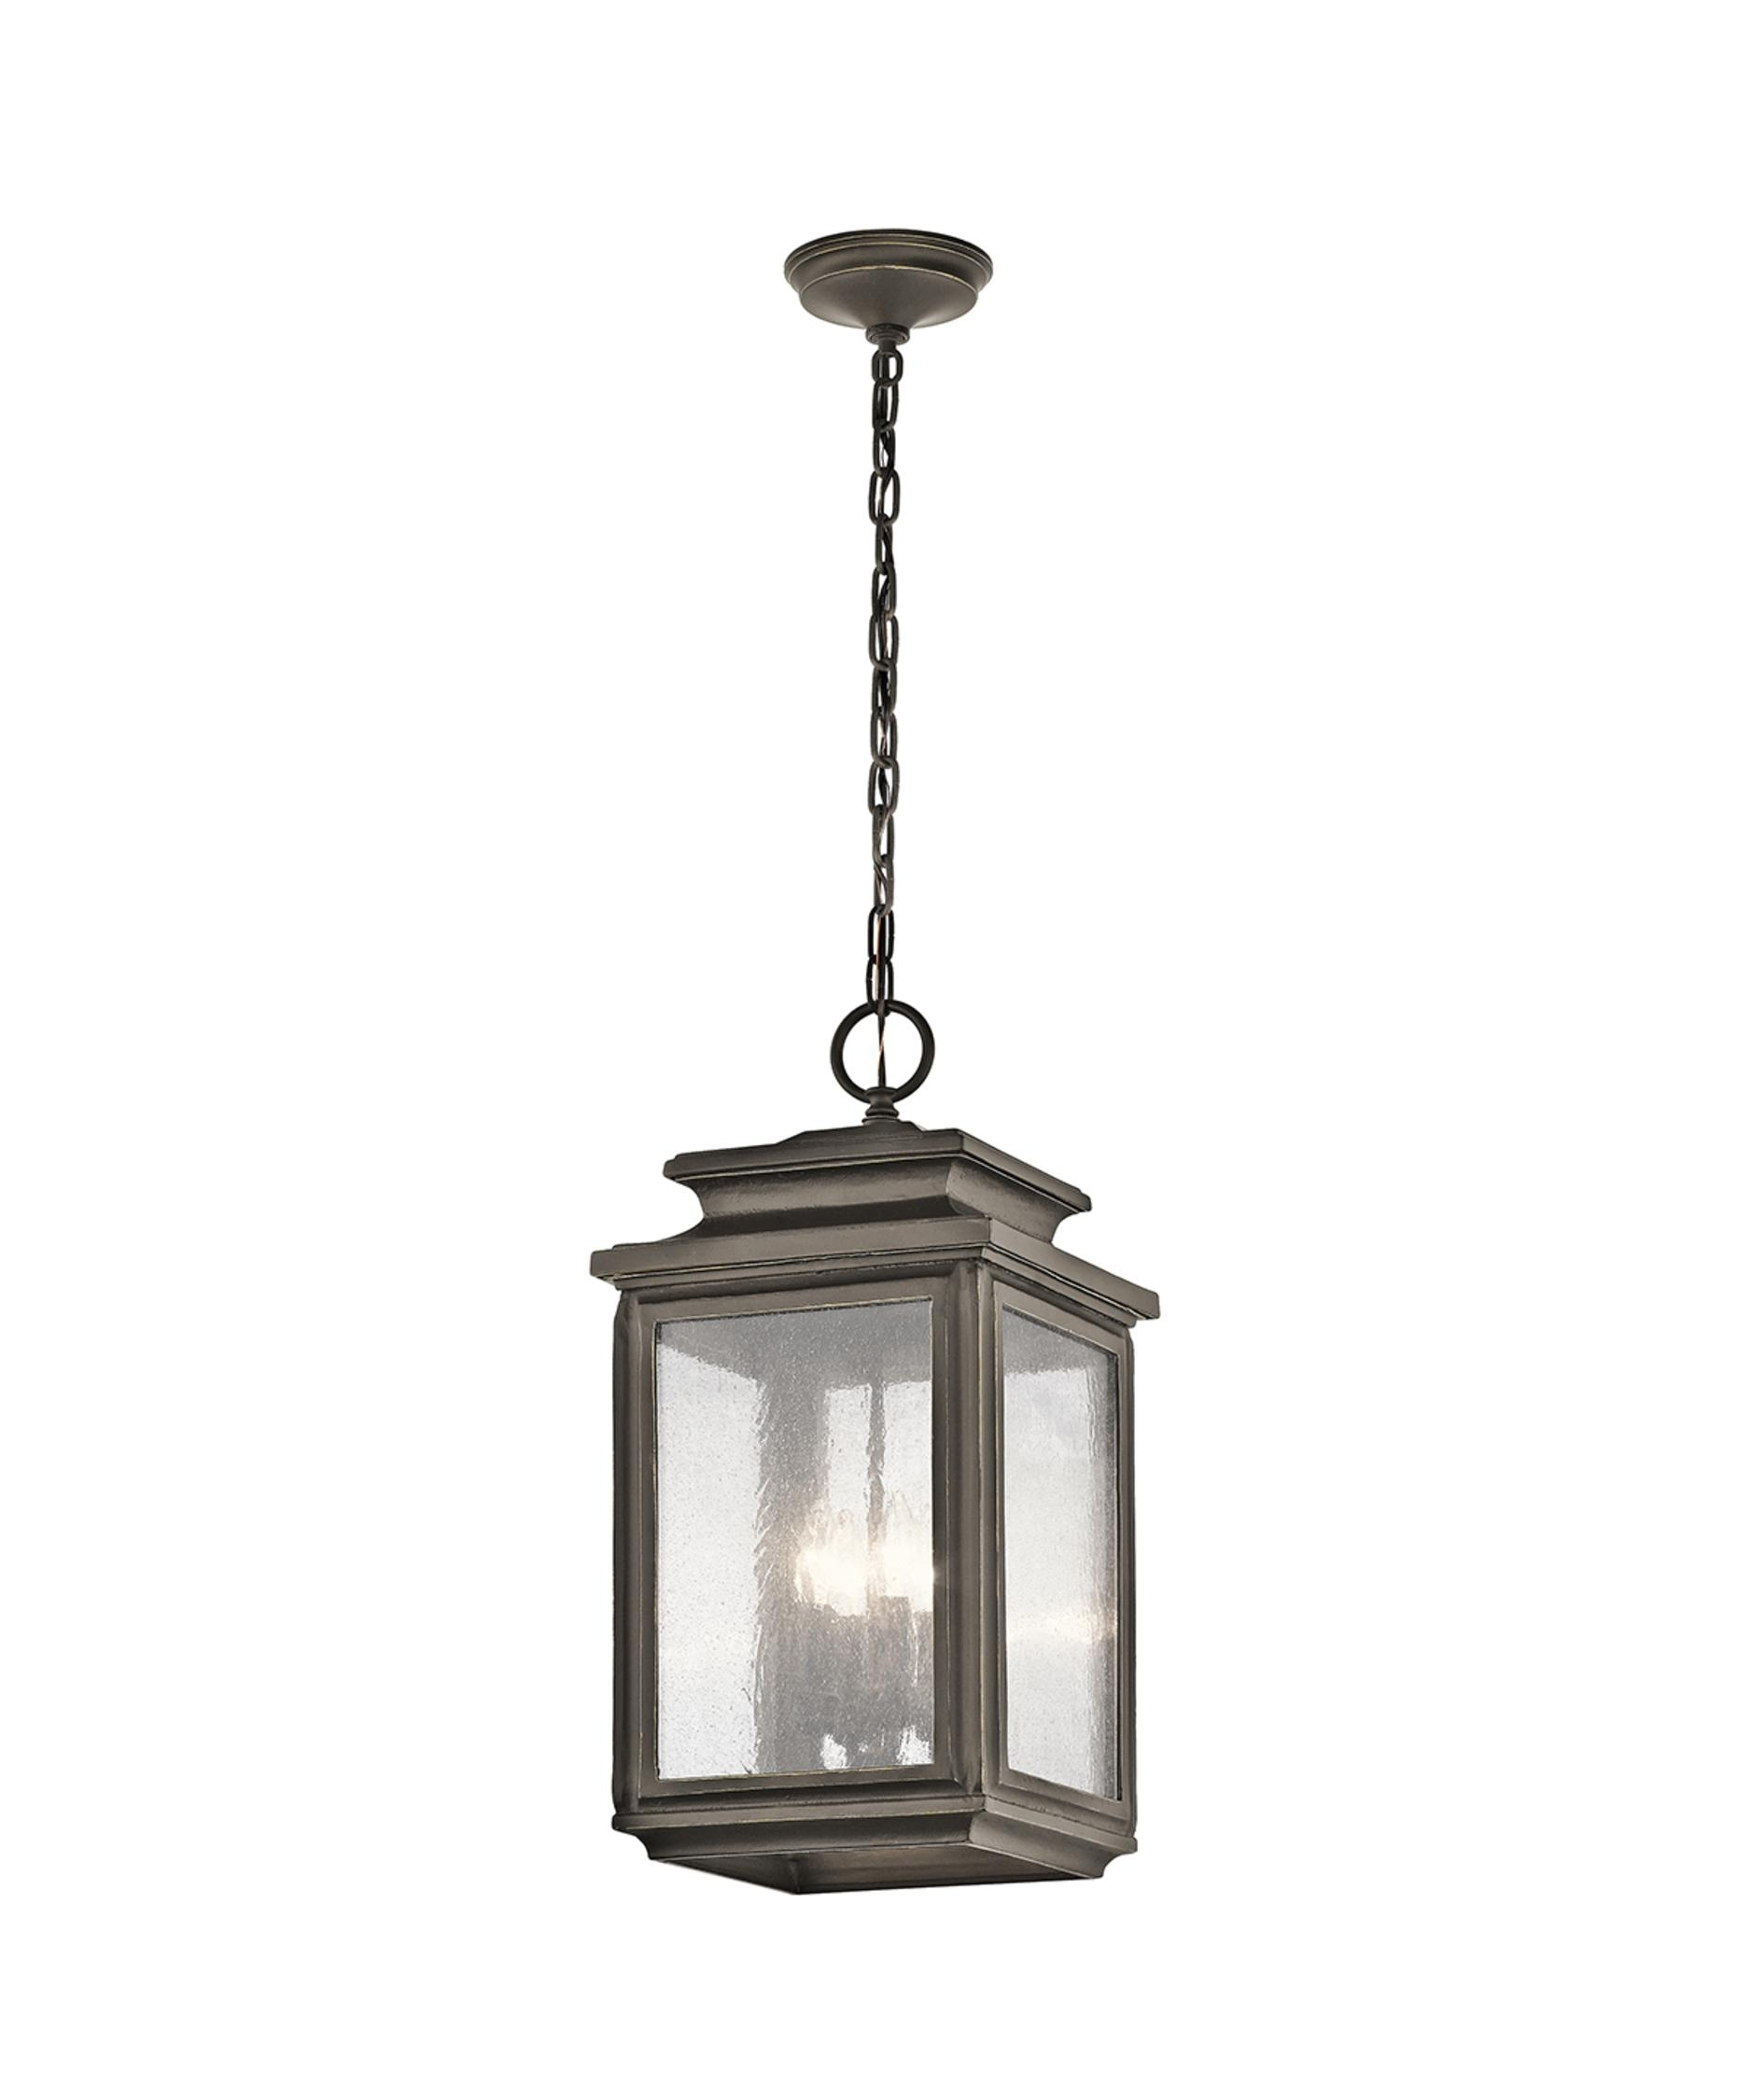 2019 Outdoor Pendant Lanterns With Kichler 49505 Wiscombe Park 11 Inch Wide 4 Light Outdoor Hanging (View 1 of 20)